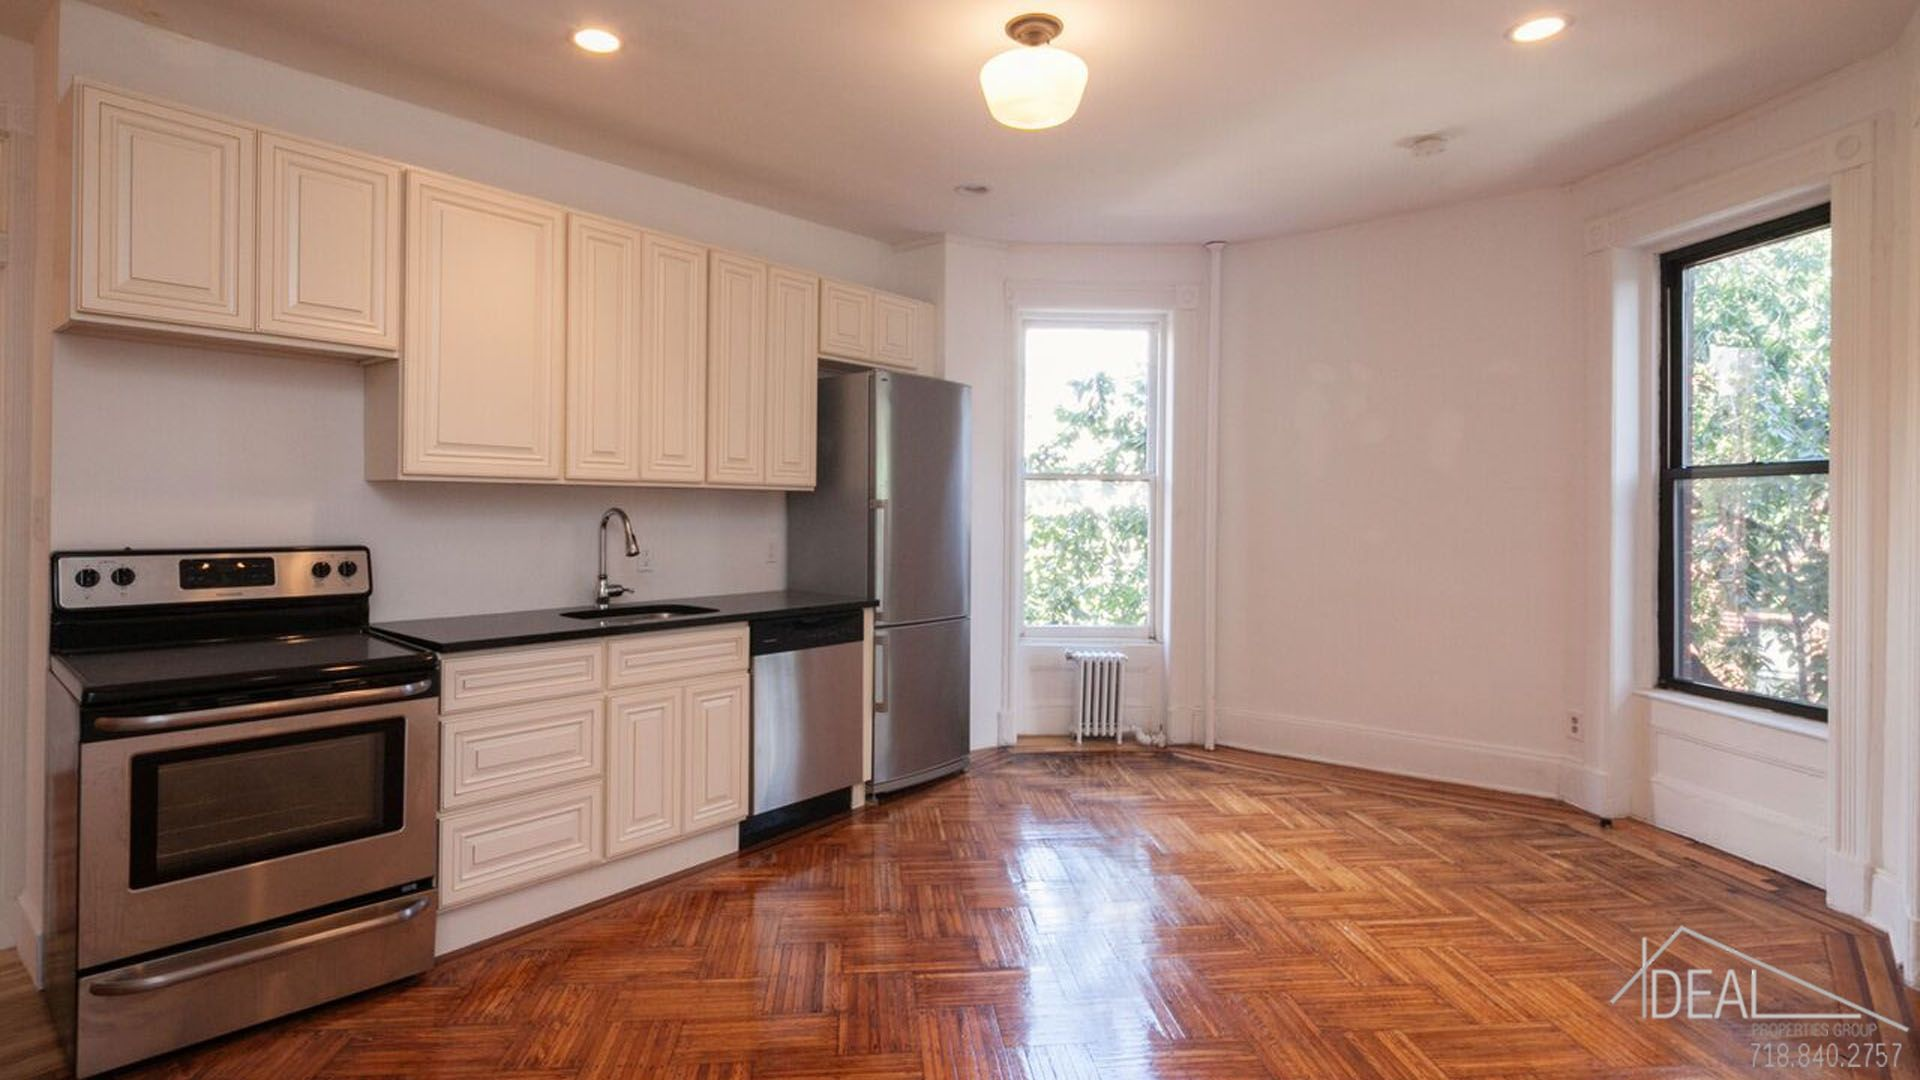 Just reduced for October 1 movein! 2 bedroom 1